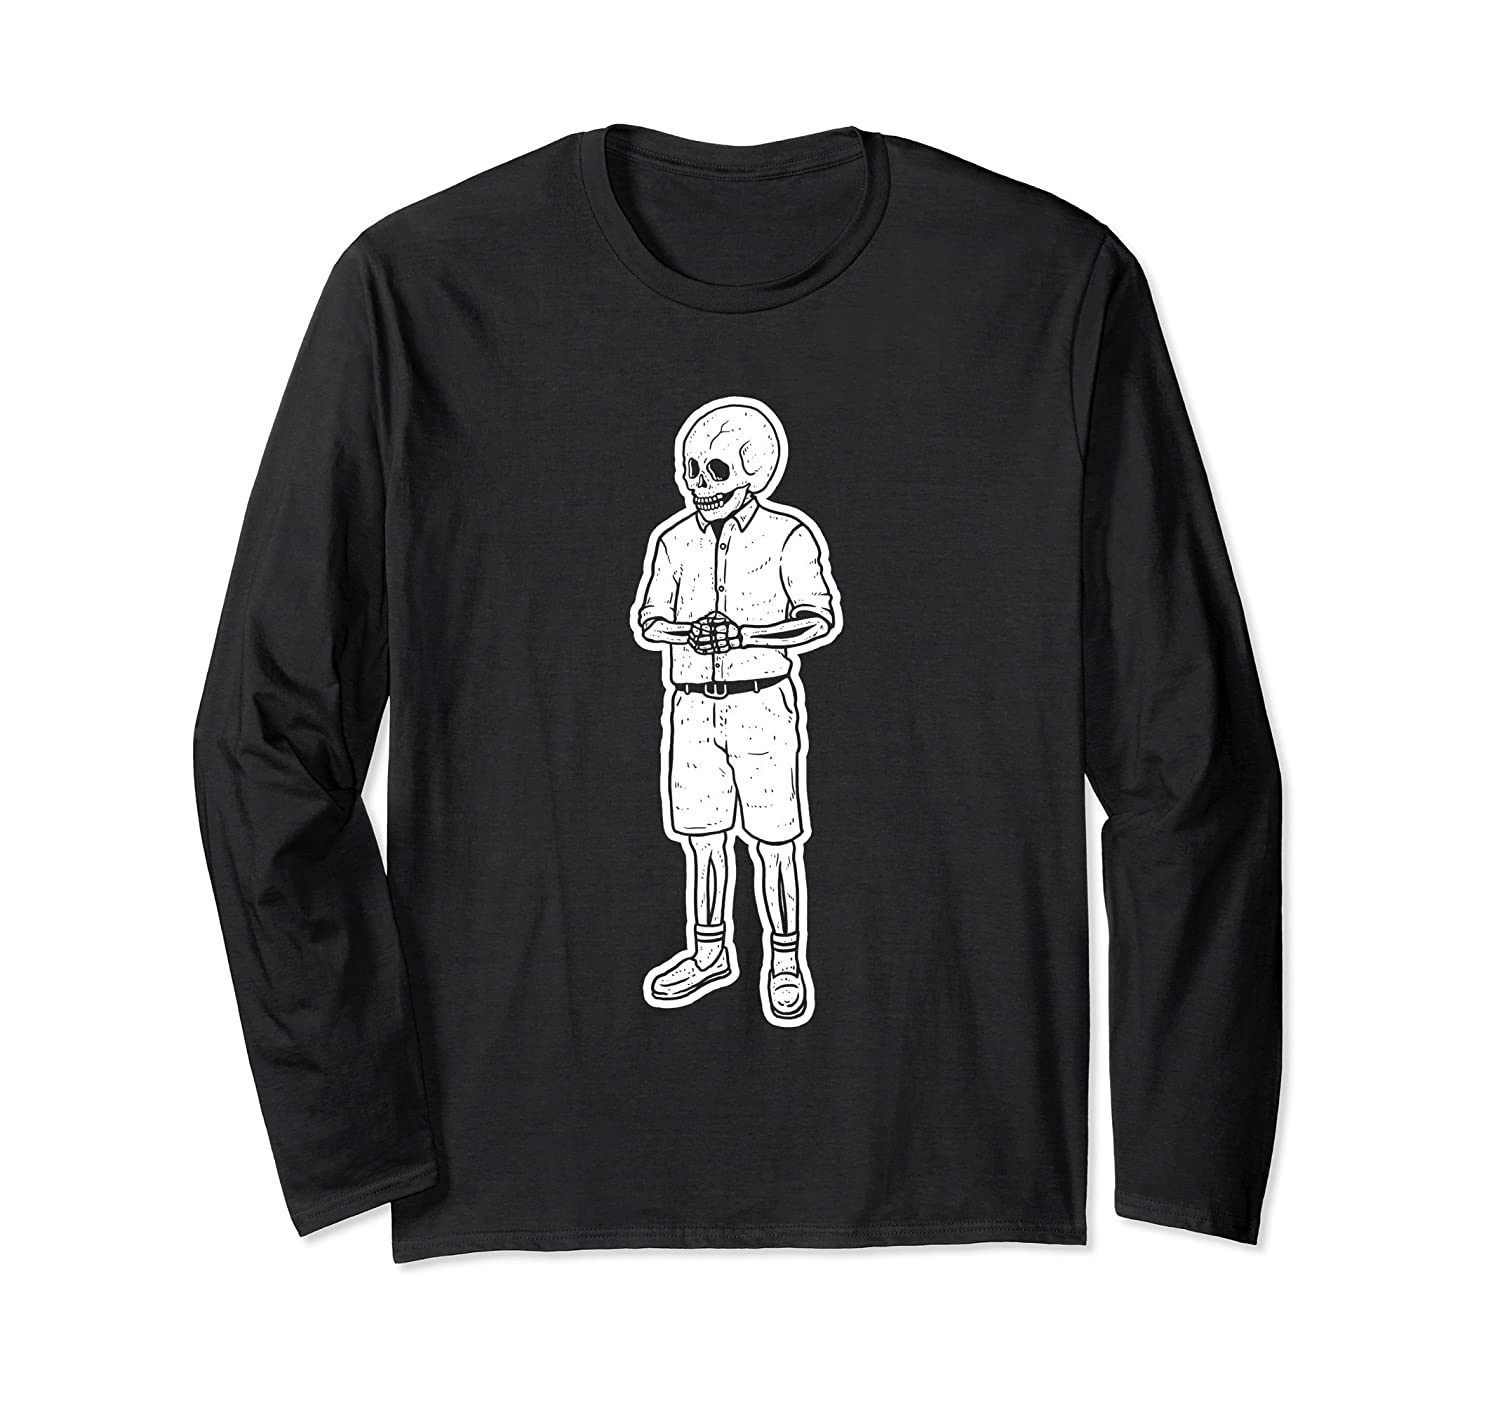 You Know I Had To Do It Skeleton Long Sleeve Shirt-mt